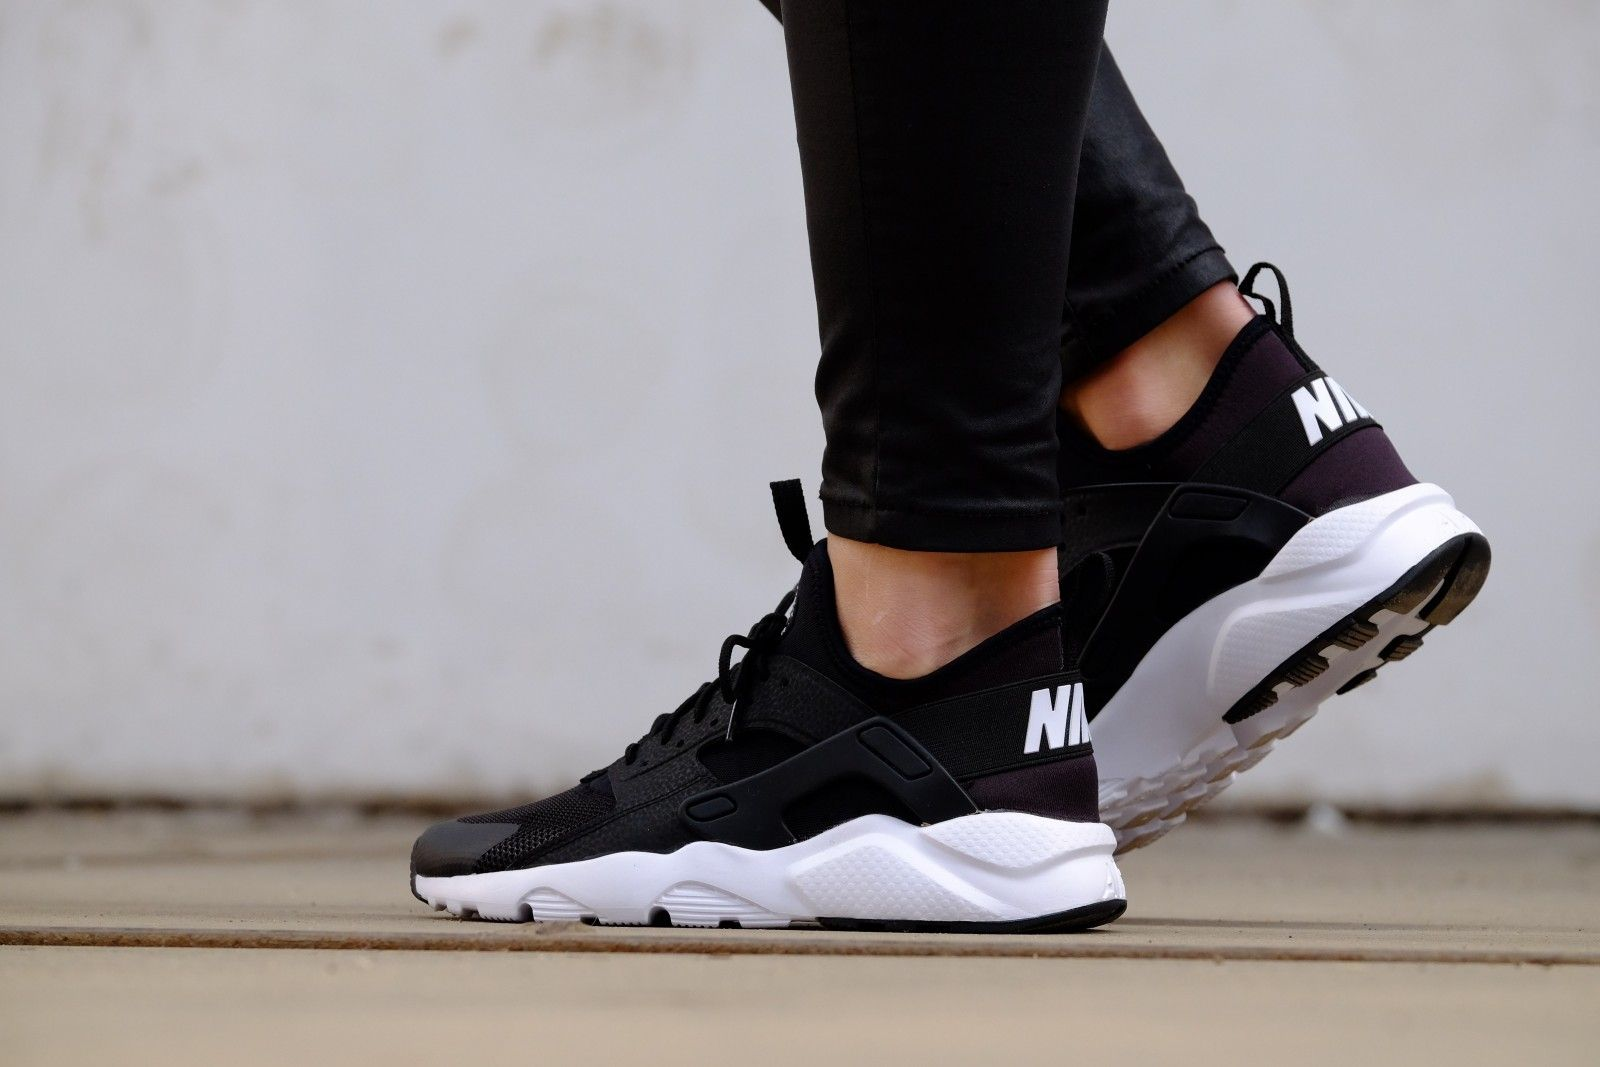 081c3b3856796 Nike Air Huarache Run Ultra GS Black  White - 847569-002